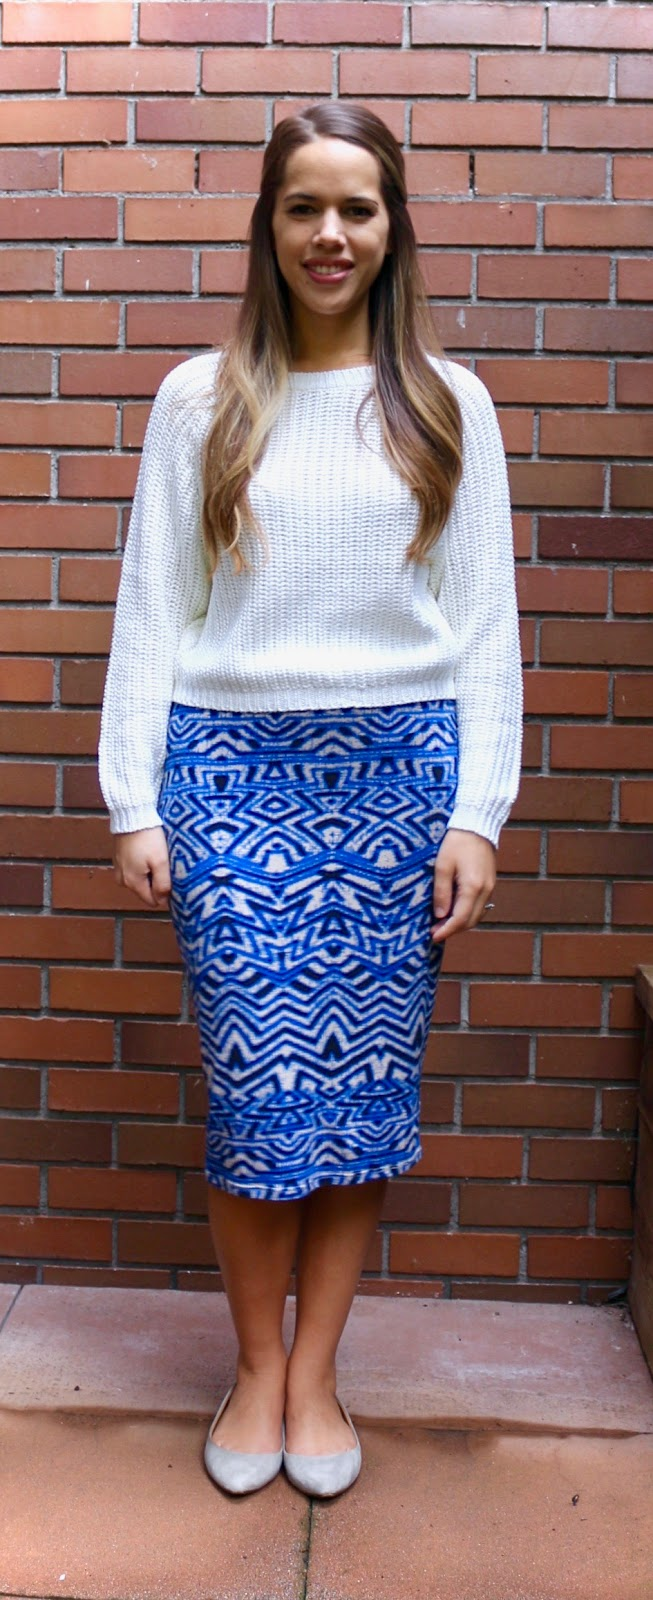 Jules in Flats - Midi Skirt with Cropped Sweater (Business Casual Fall Workwear on a Budget)